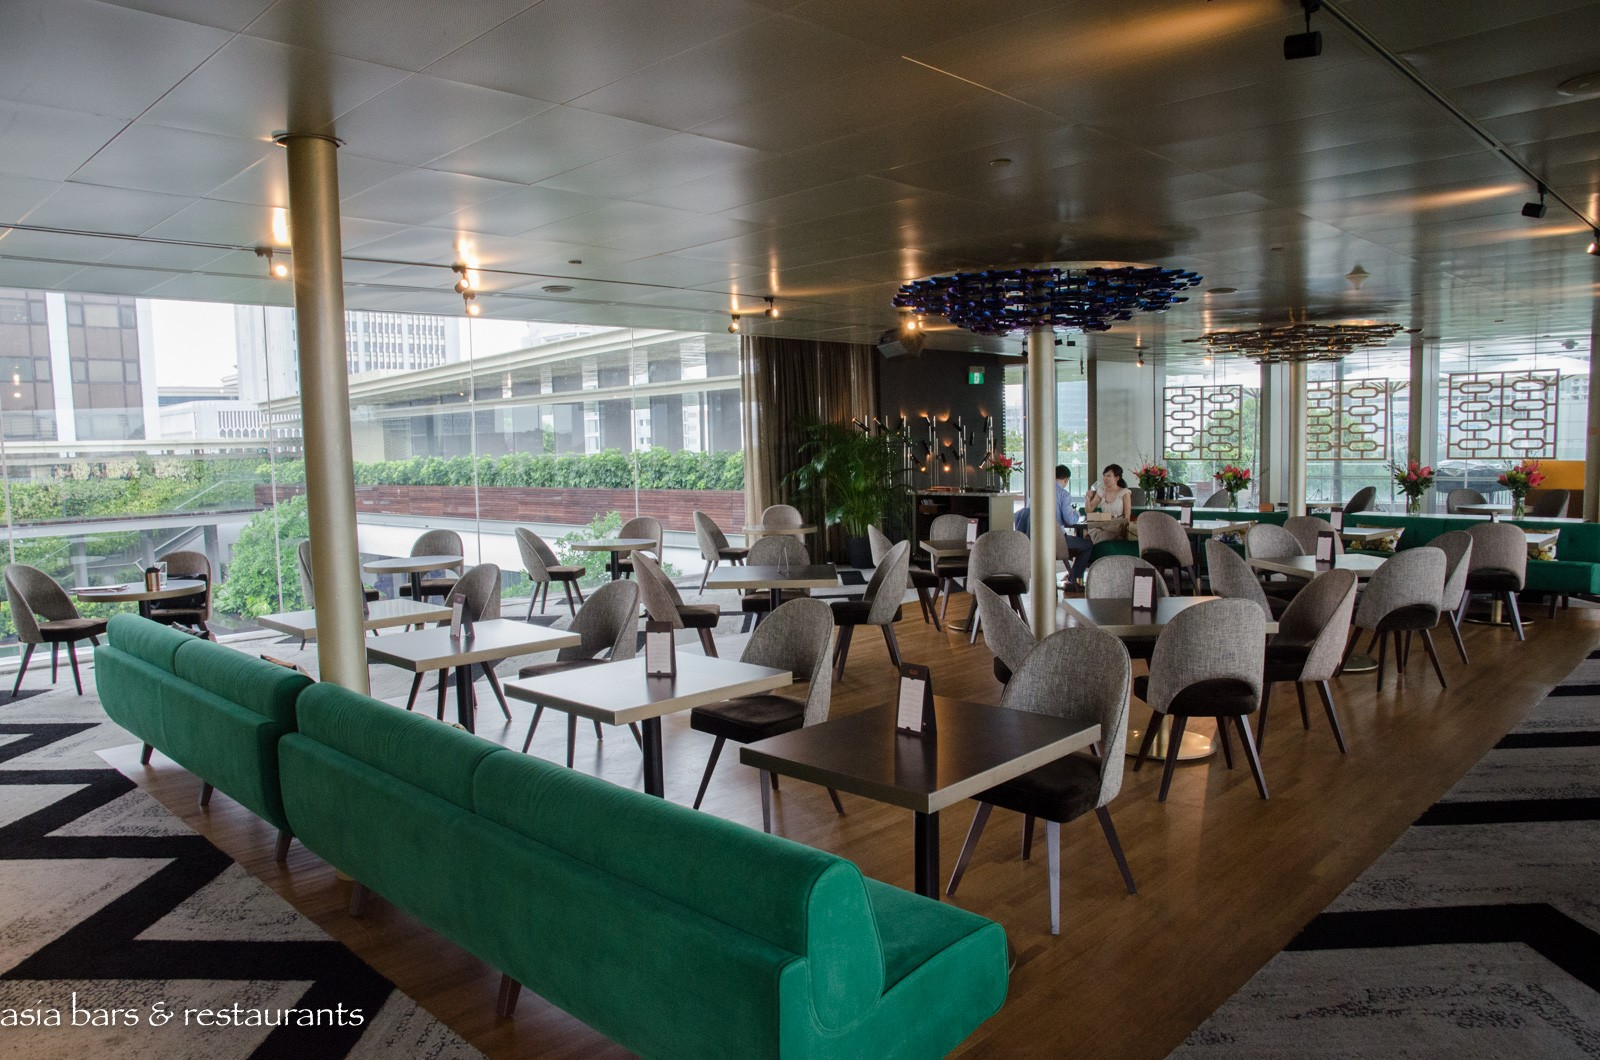 Aura Italian Restaurant & Sky Lounge – at National Gallery Singapore | Asia Bars & Restaurants